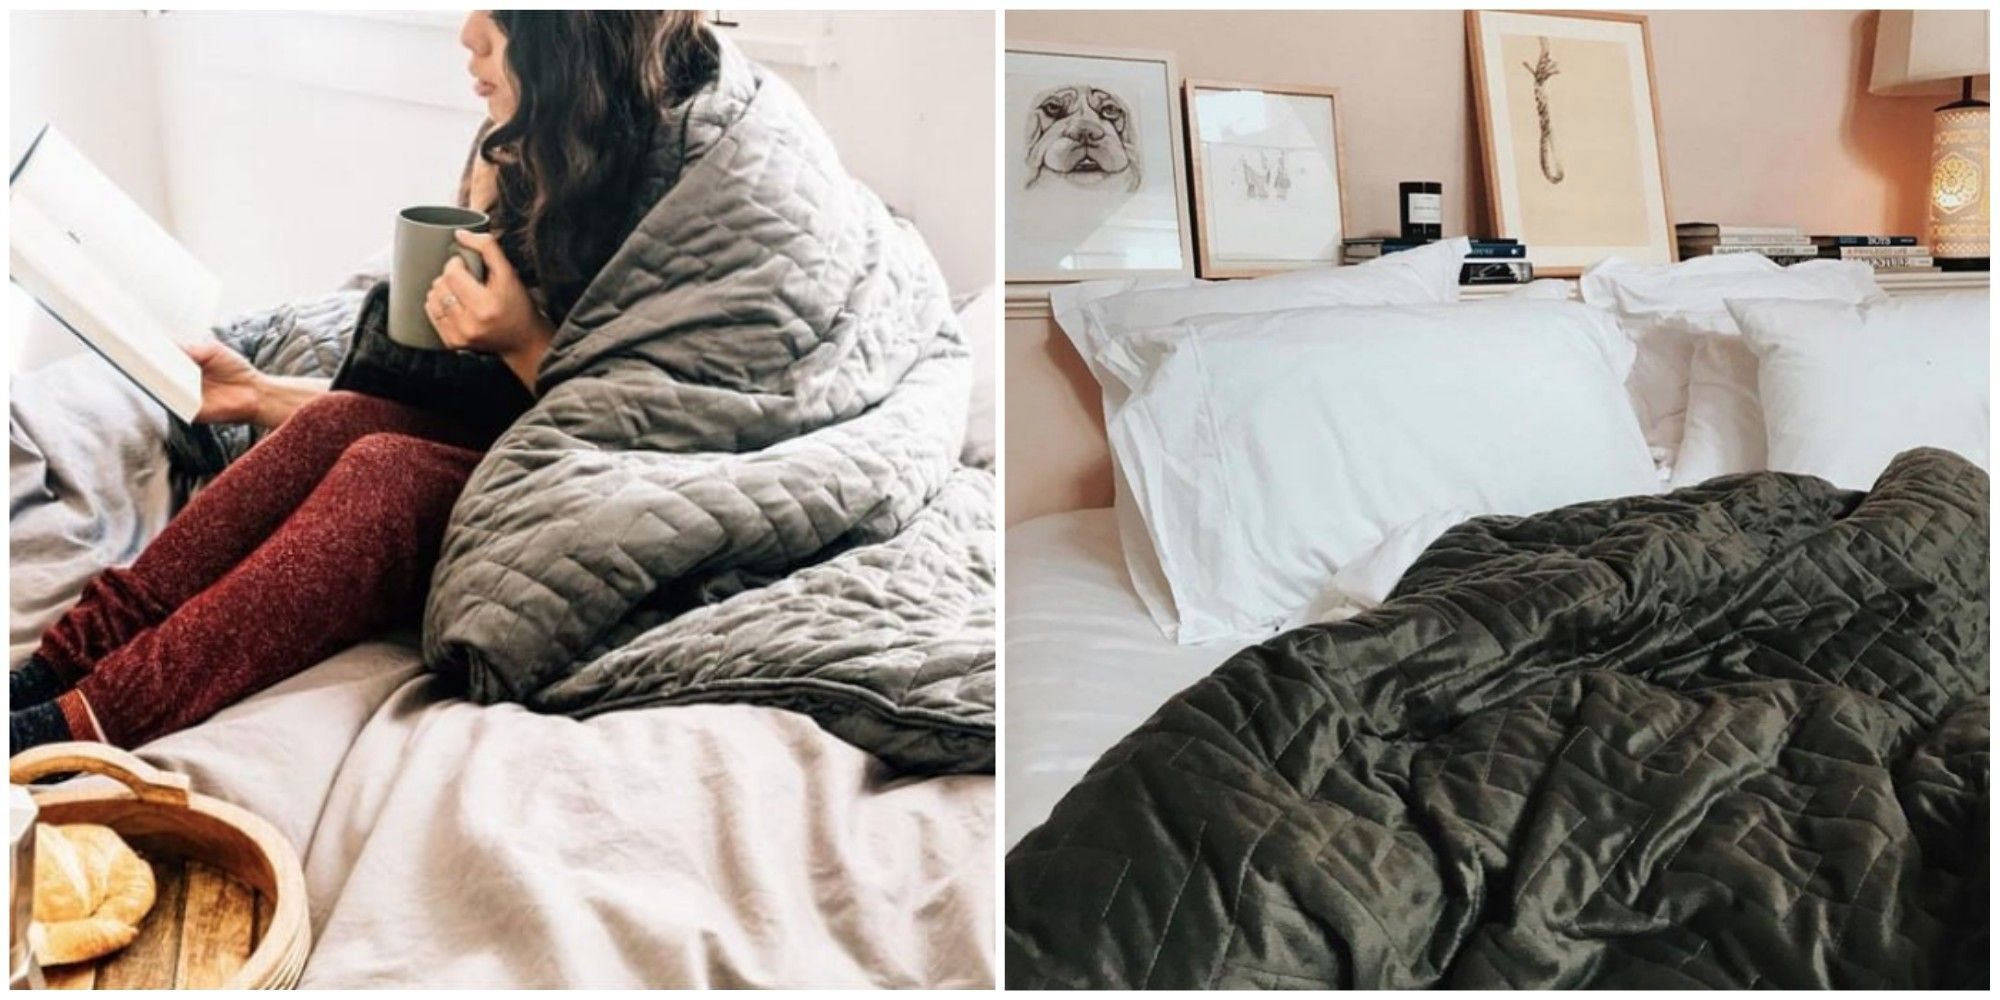 Weighted Blankets Designed to Relieve Anxiety and Insomnia Are on Sale for Just $53 Today